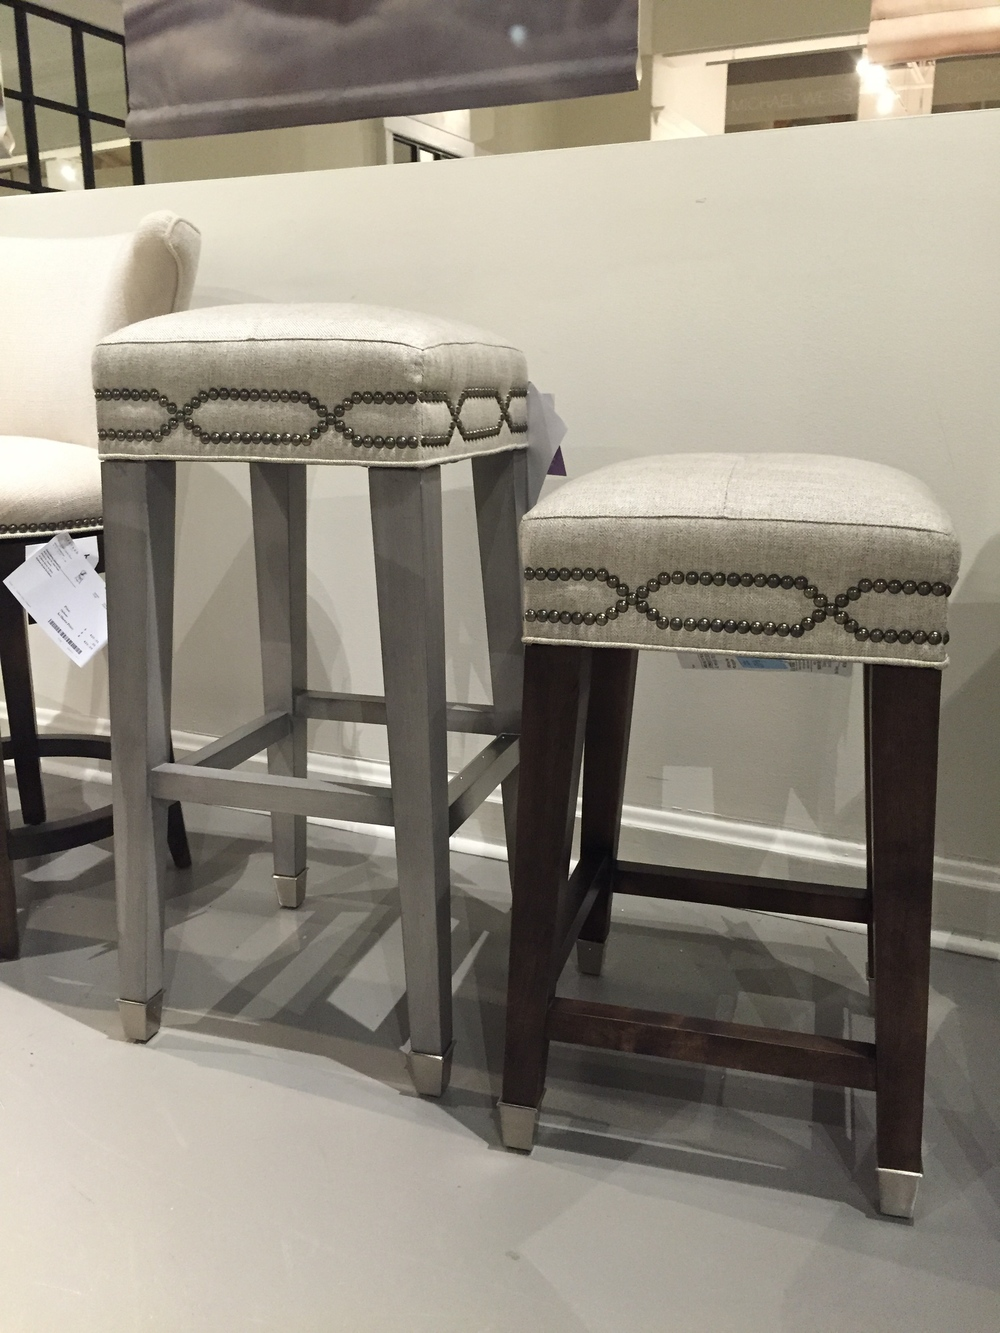 The perfect little bar stools for a kitchen counter!